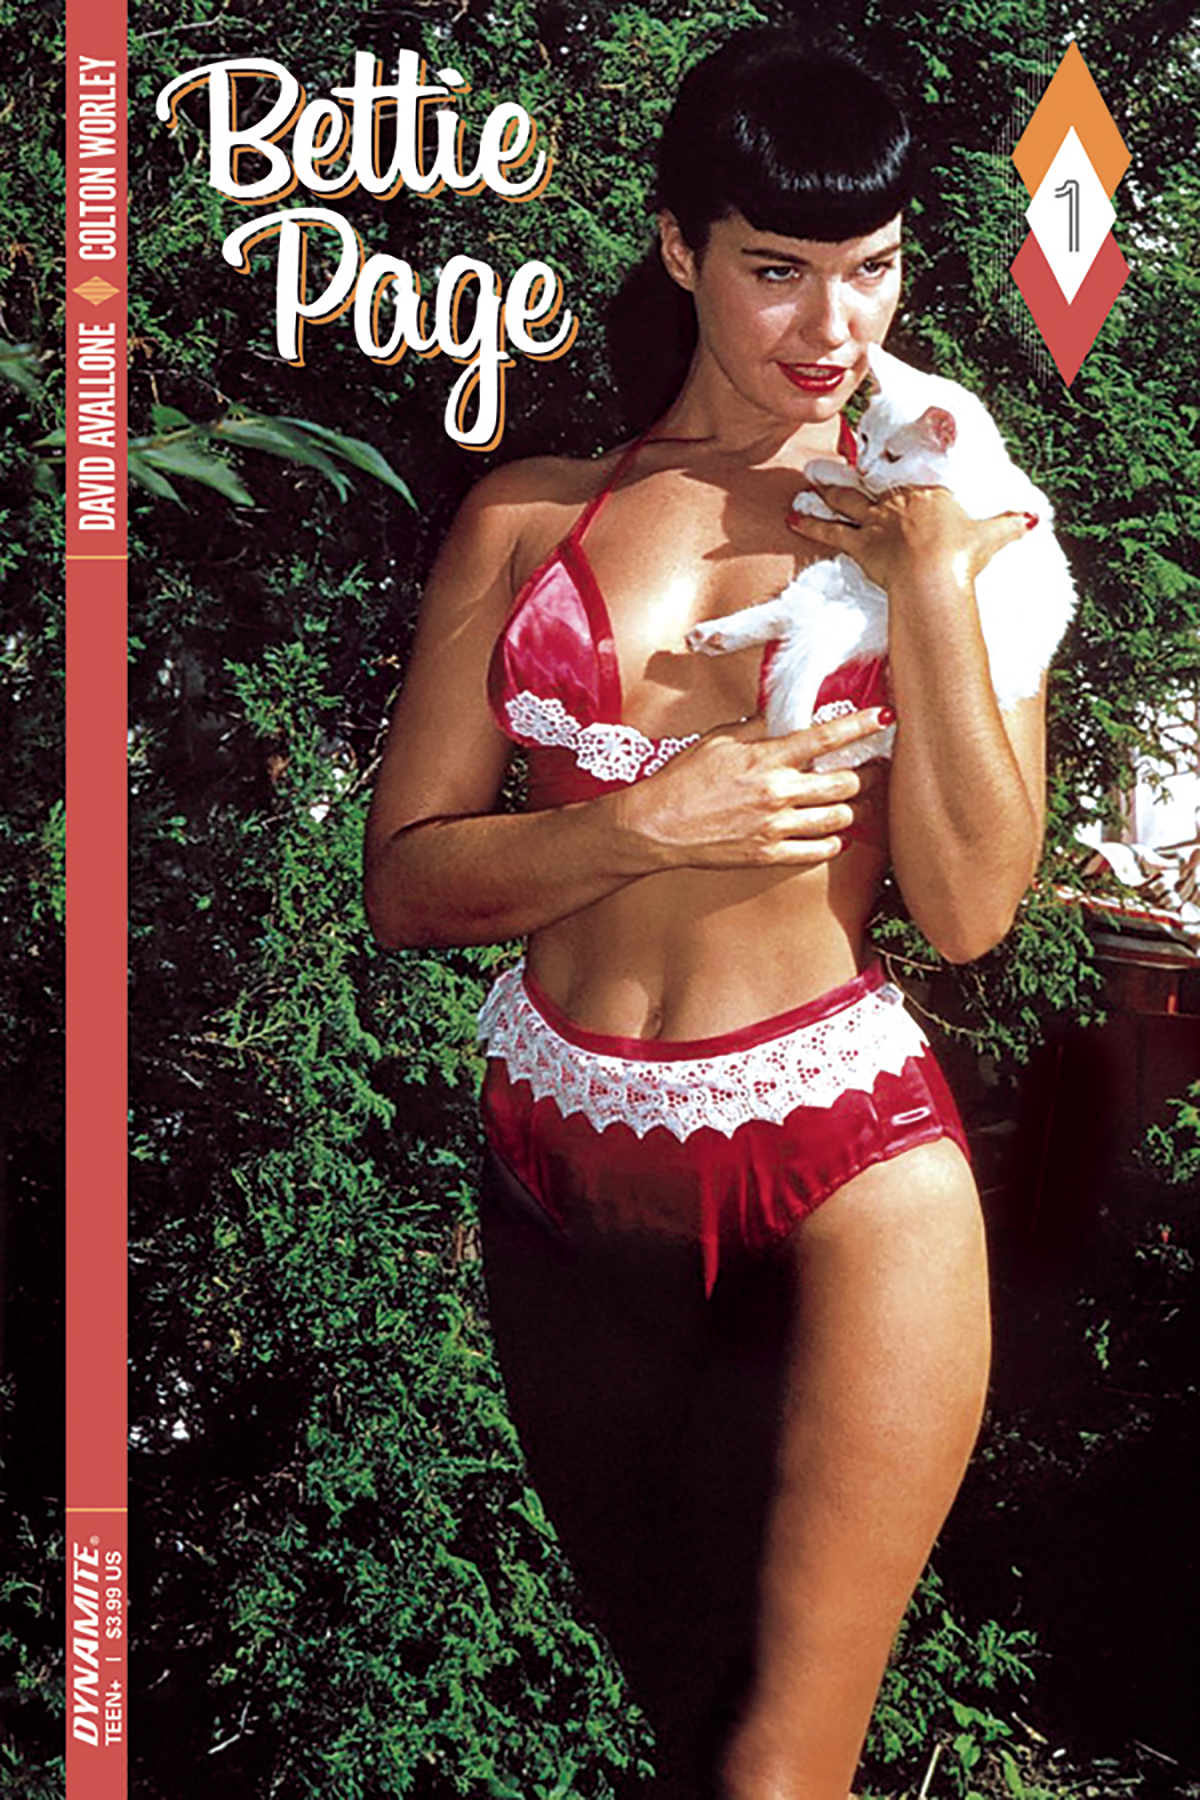 BETTIE PAGE #1 CVR D COLOR PHOTO